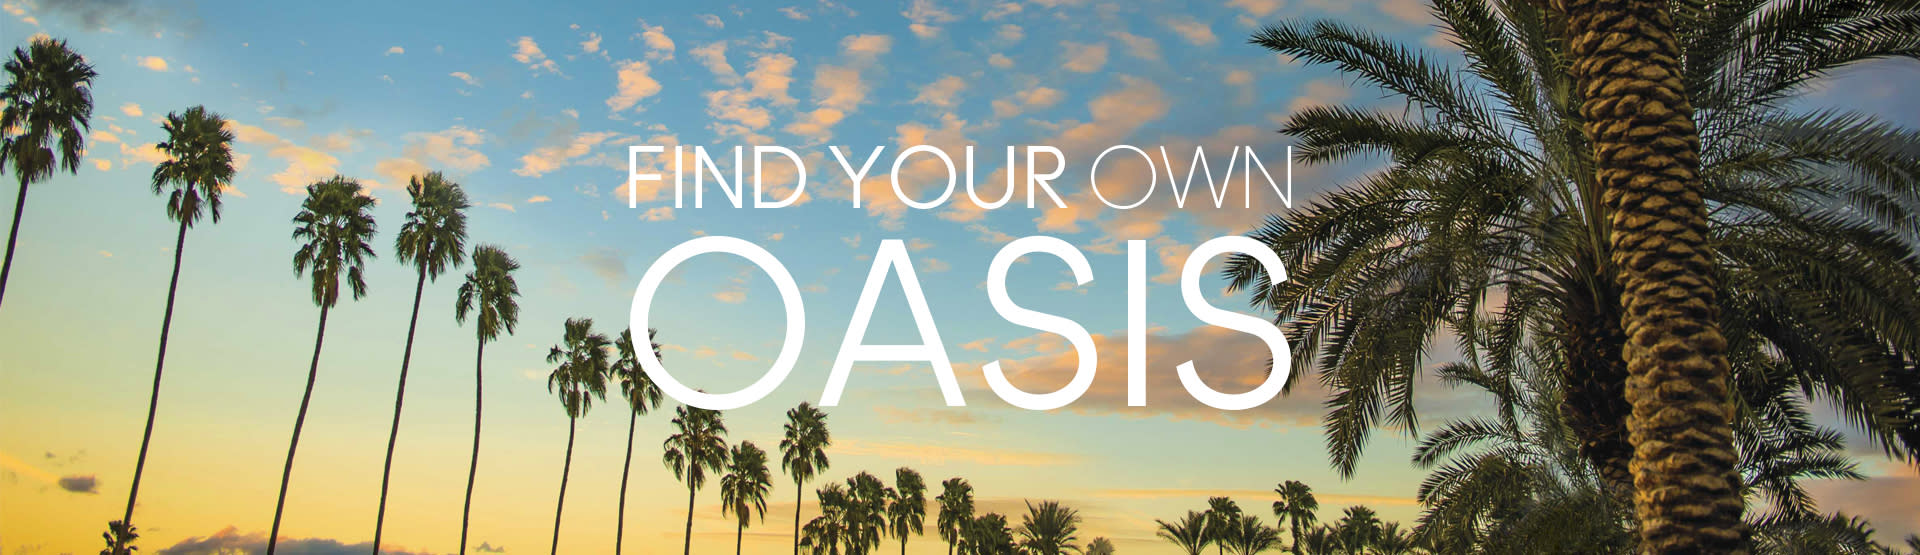 Find your own oasis with palm trees and sunset